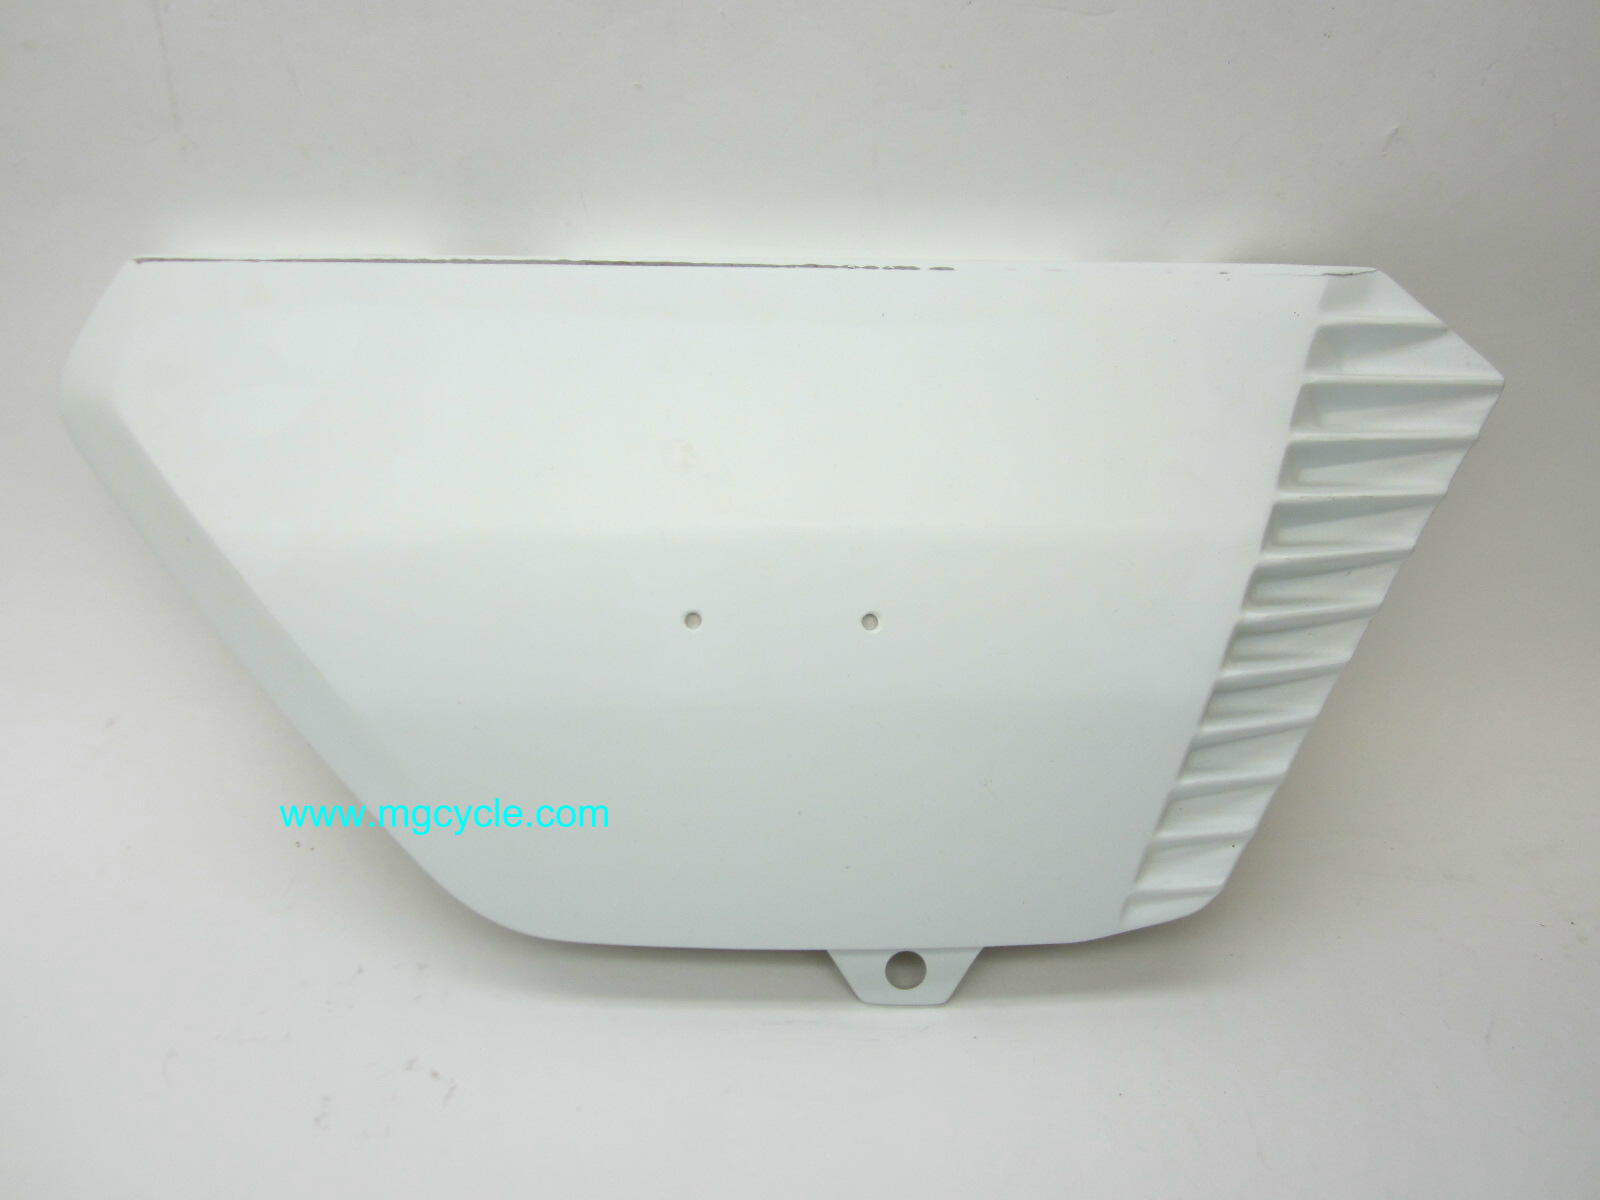 V50 V50 II battery cover, side cover, right side, unpainted